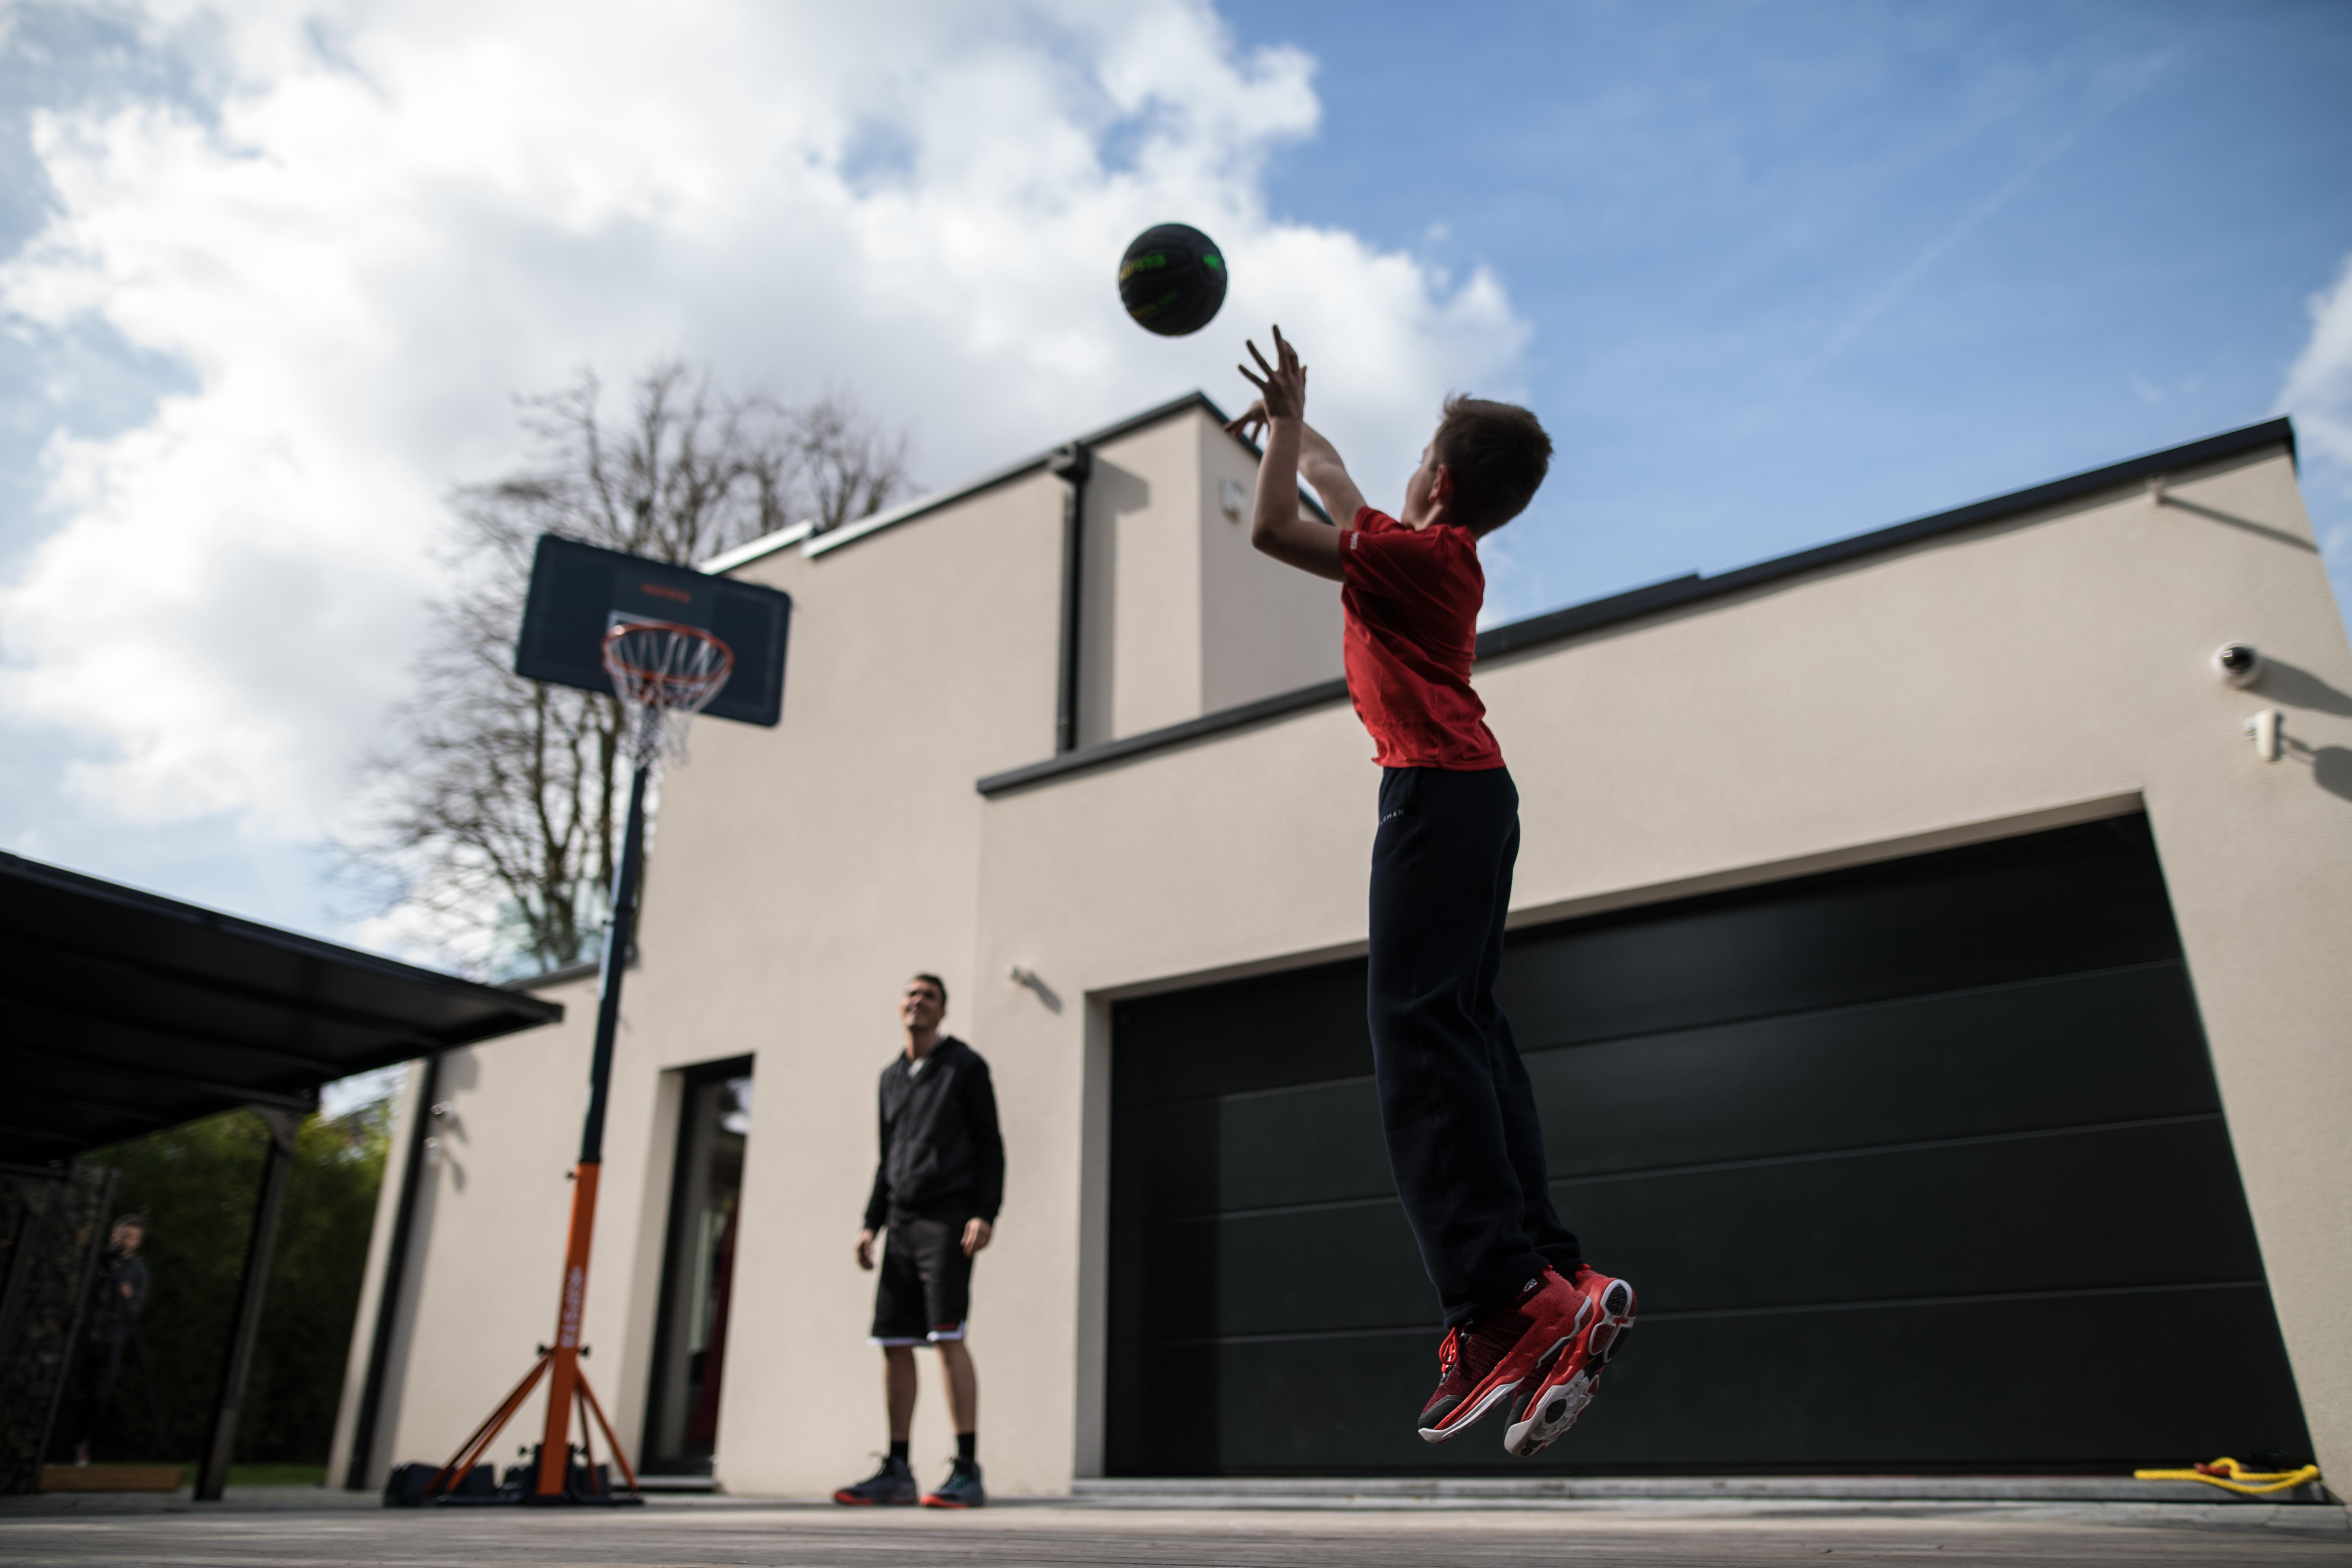 WHAT ARE THE BENEFITS OF BASKETBALL?